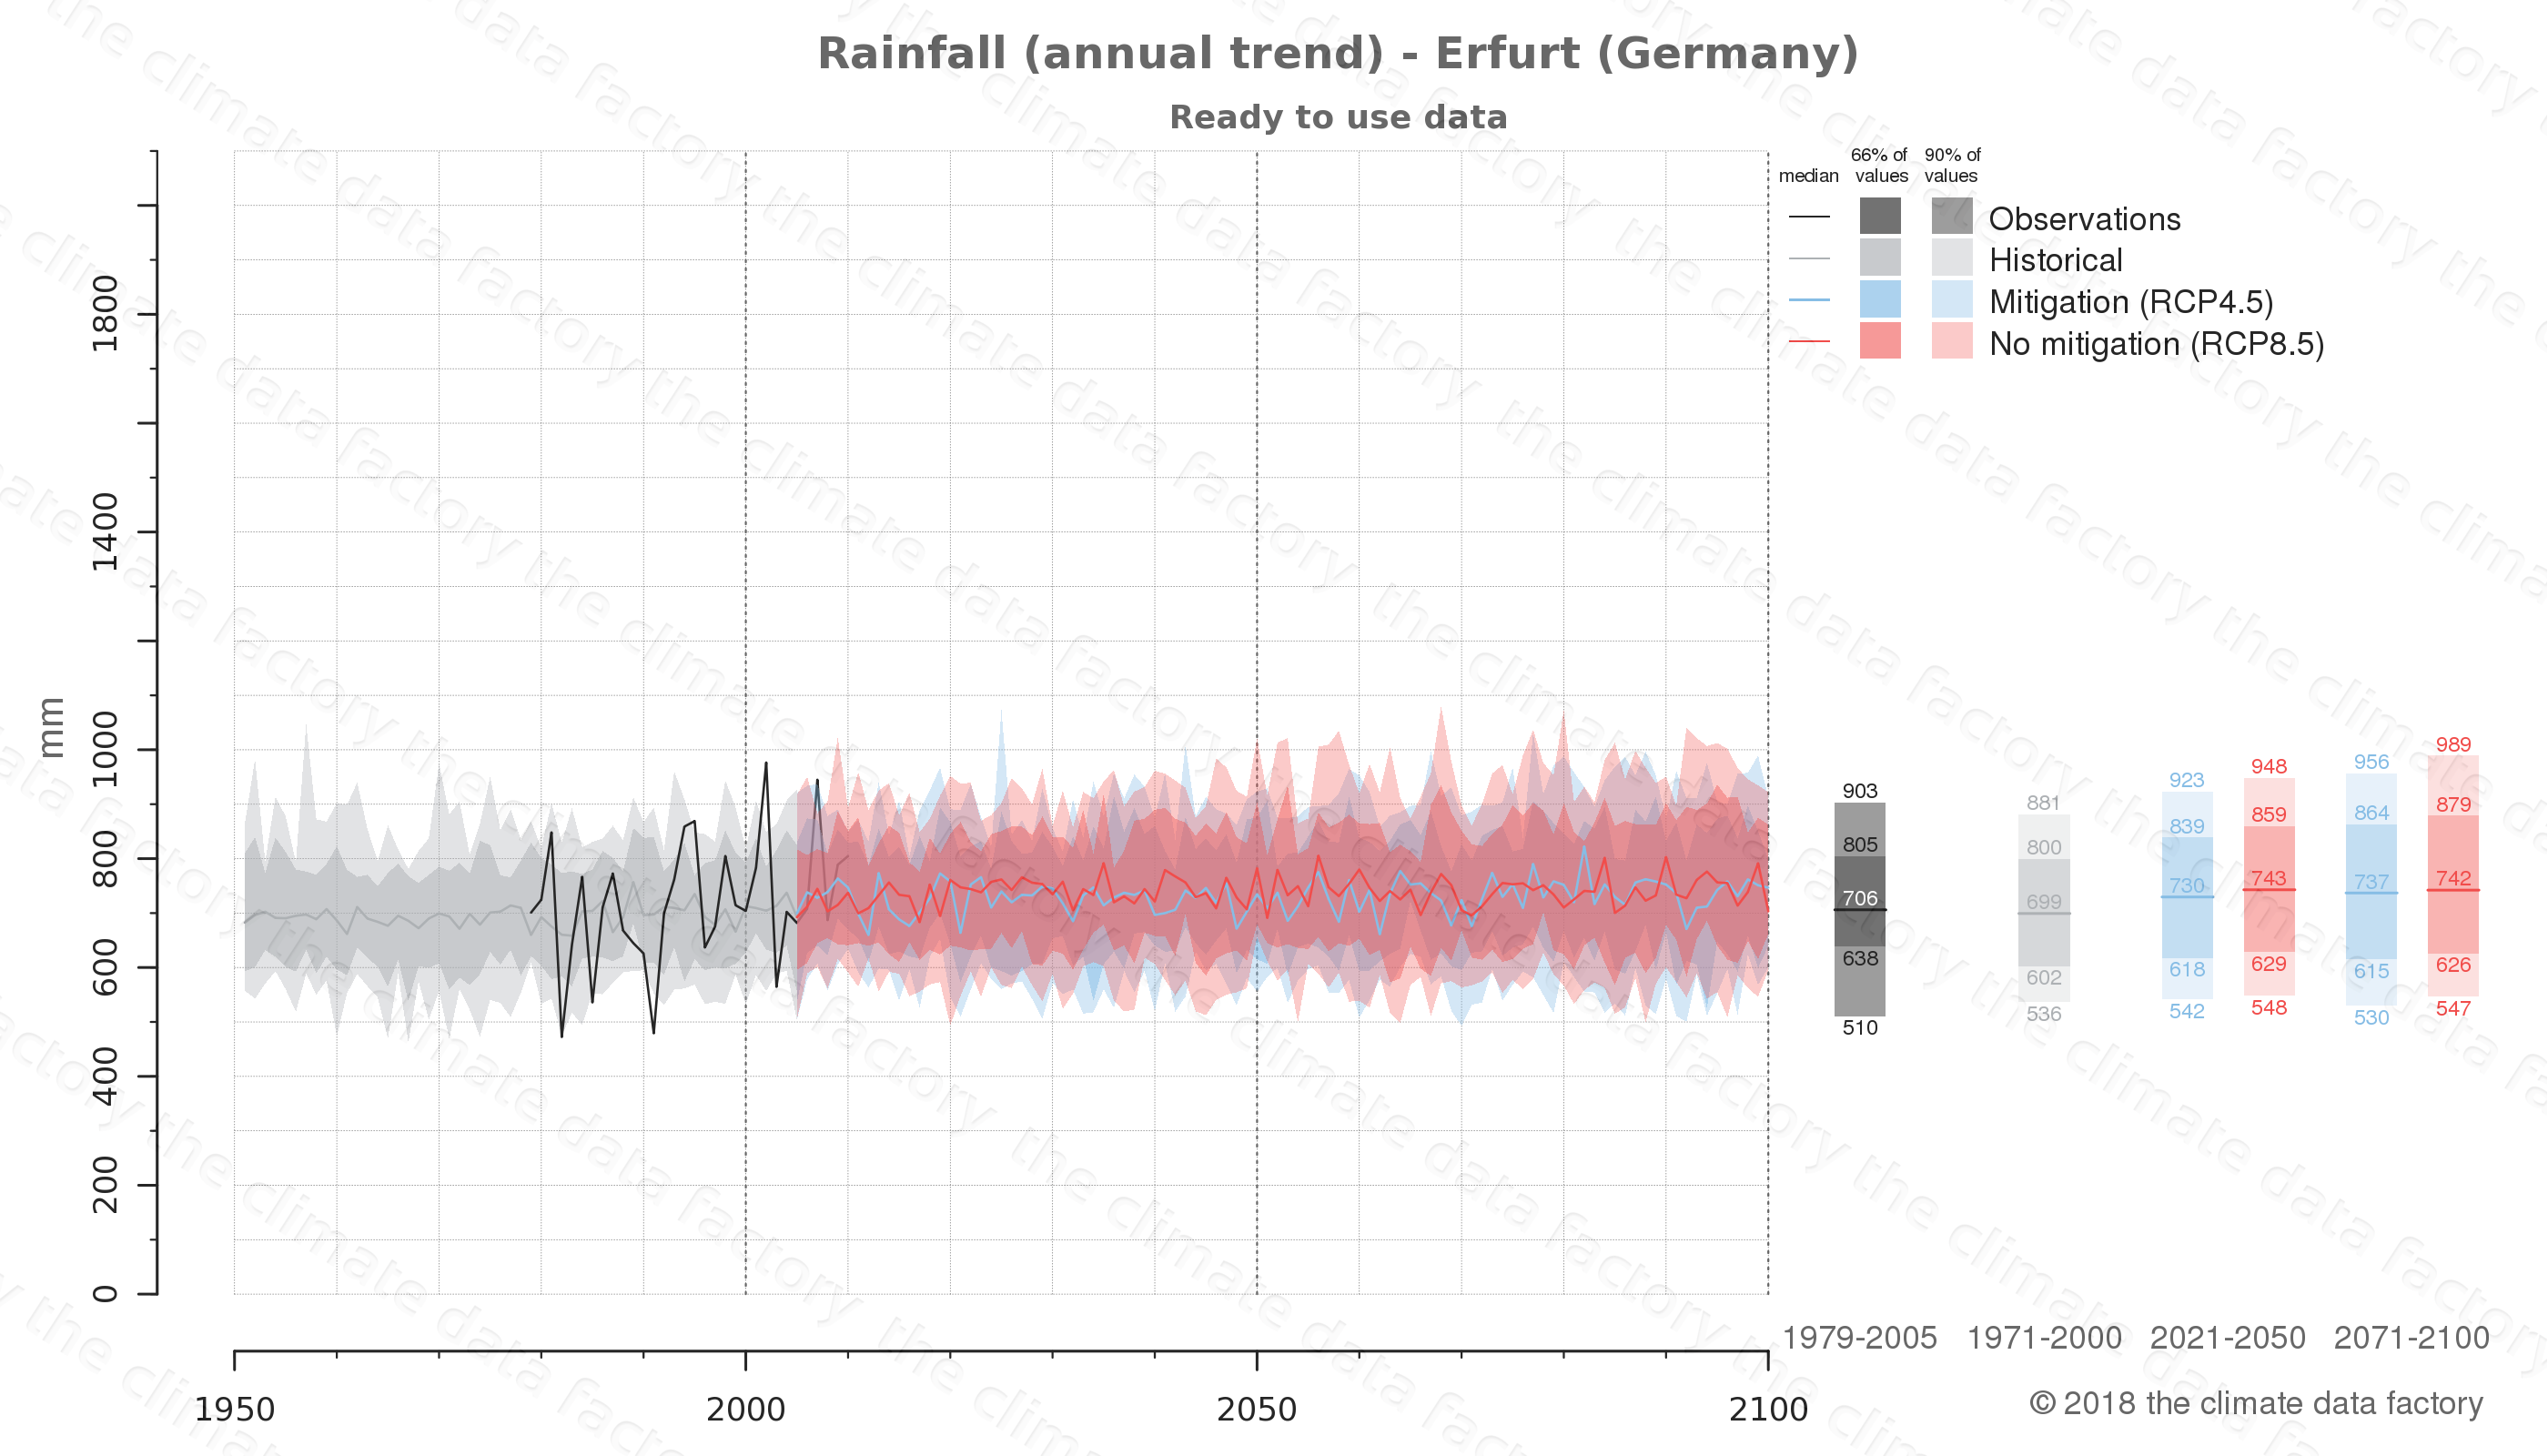 climate change data policy adaptation climate graph city data rainfall erfurt germany